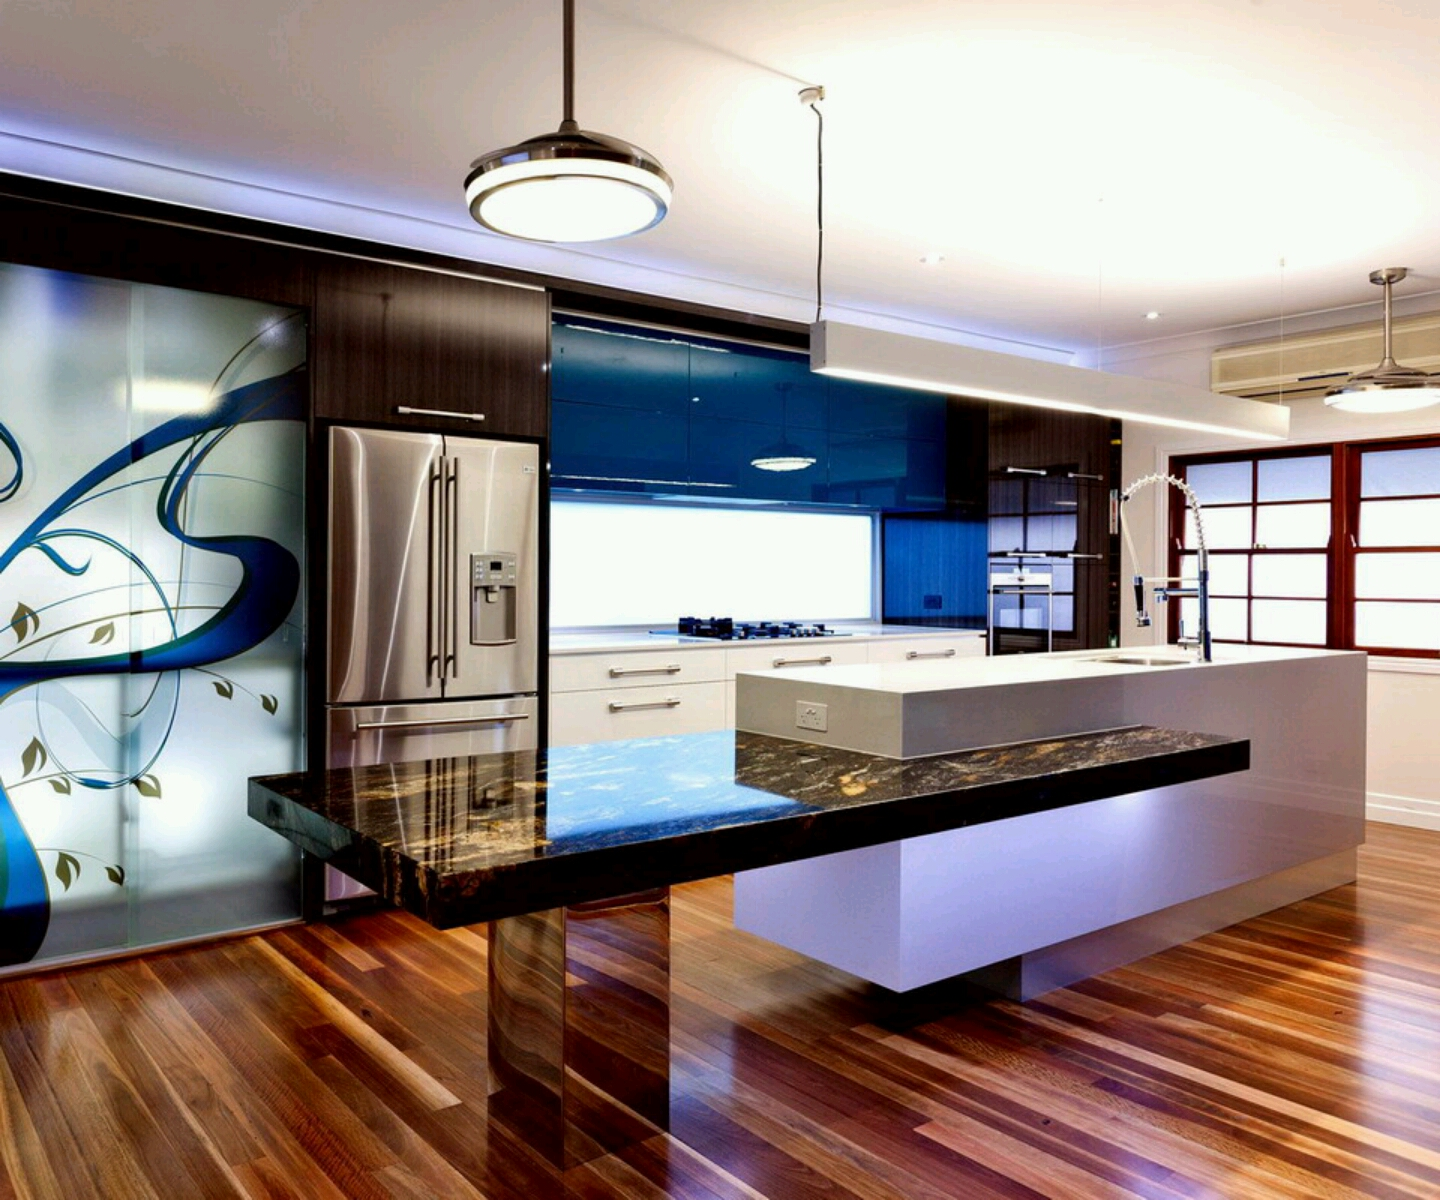 Ultra modern kitchen designs ideas new home designs for Modern kitchen